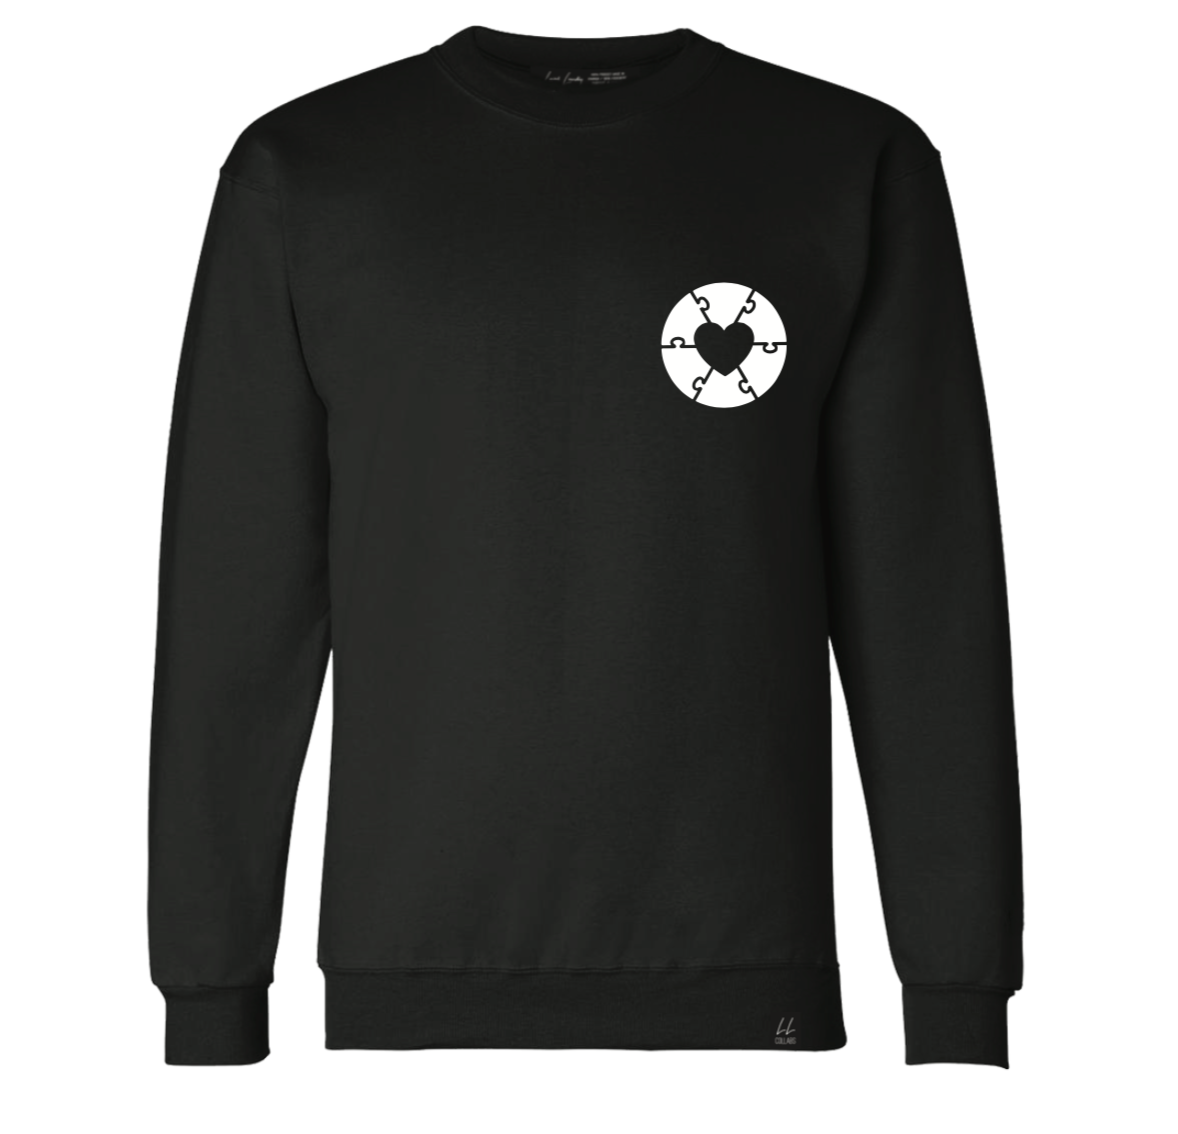 PRESALE - Ryder's Crew - Autism Awareness Sweater - Unisex - Black